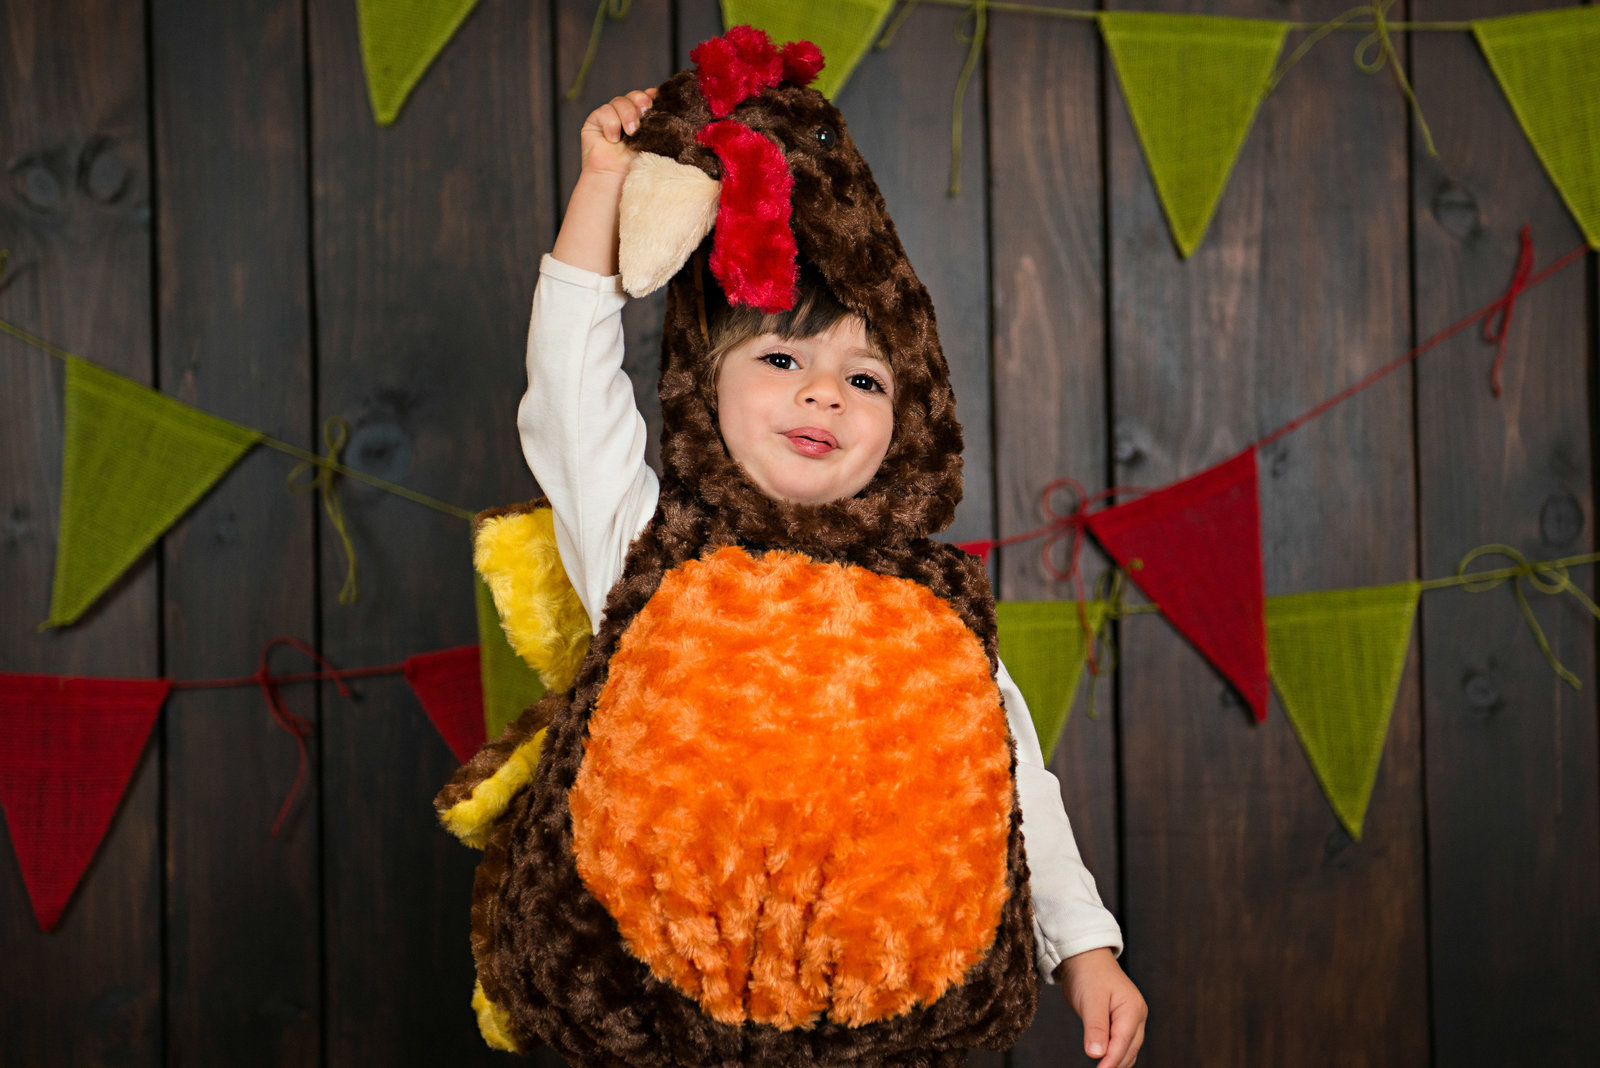 caitlin-chadwick-studios-holiday-mini-portrait-beautiful-brunette-brown-eyed-boy-toddler-happy-organic-woodsy-autumn-colors-turkey-costume_0001-3500